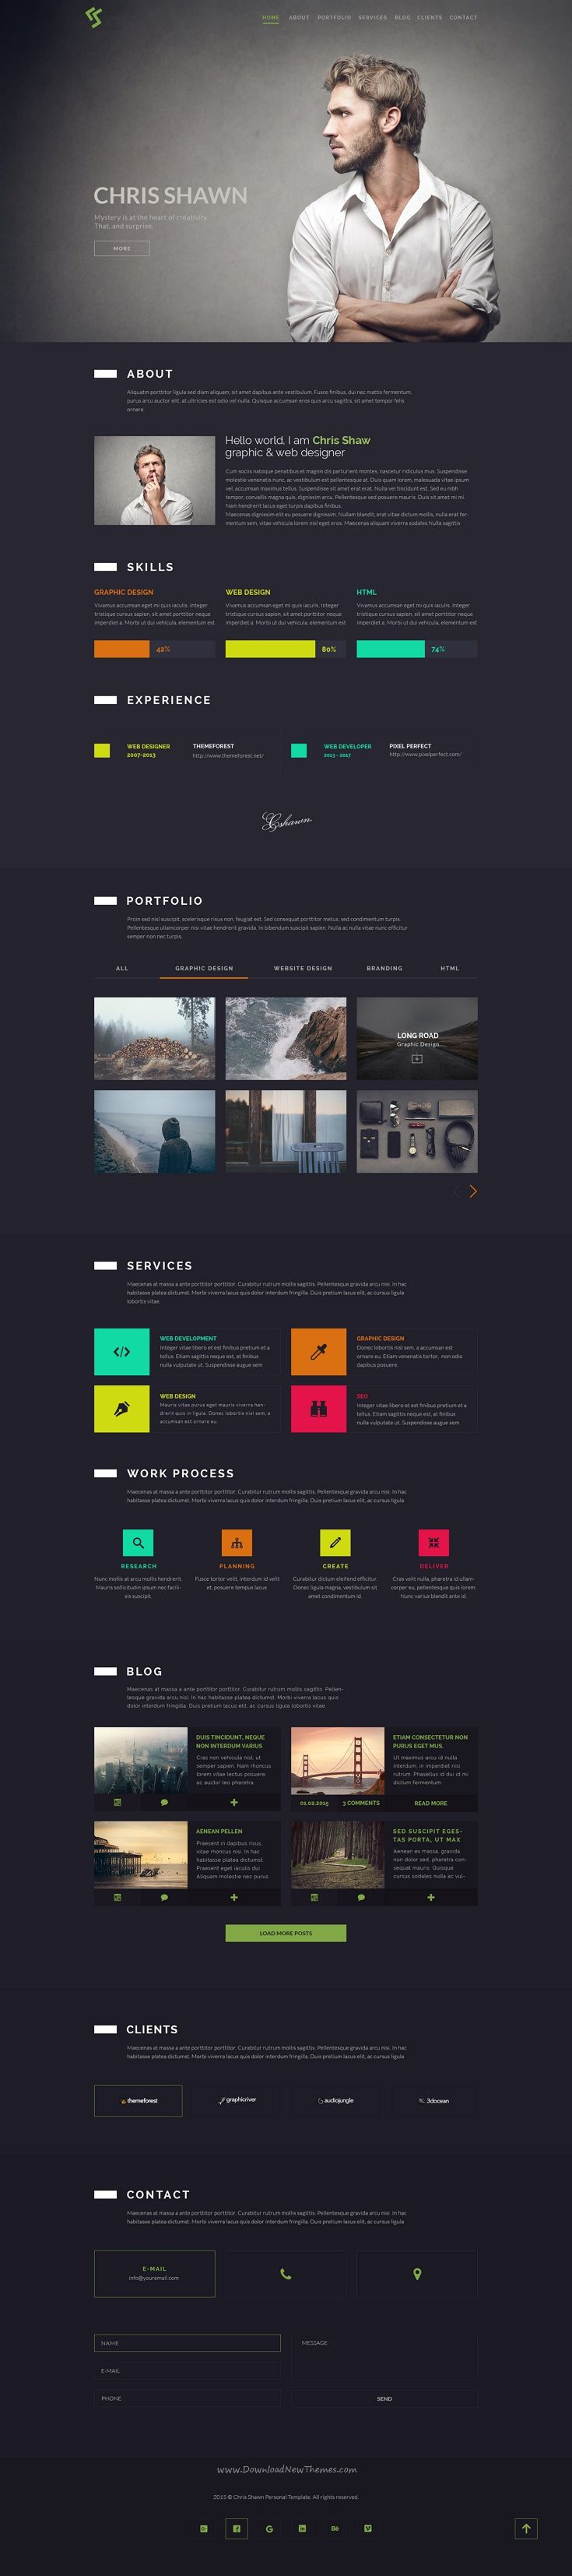 348 best Web Design images on Pinterest | Website, Graph design and ...